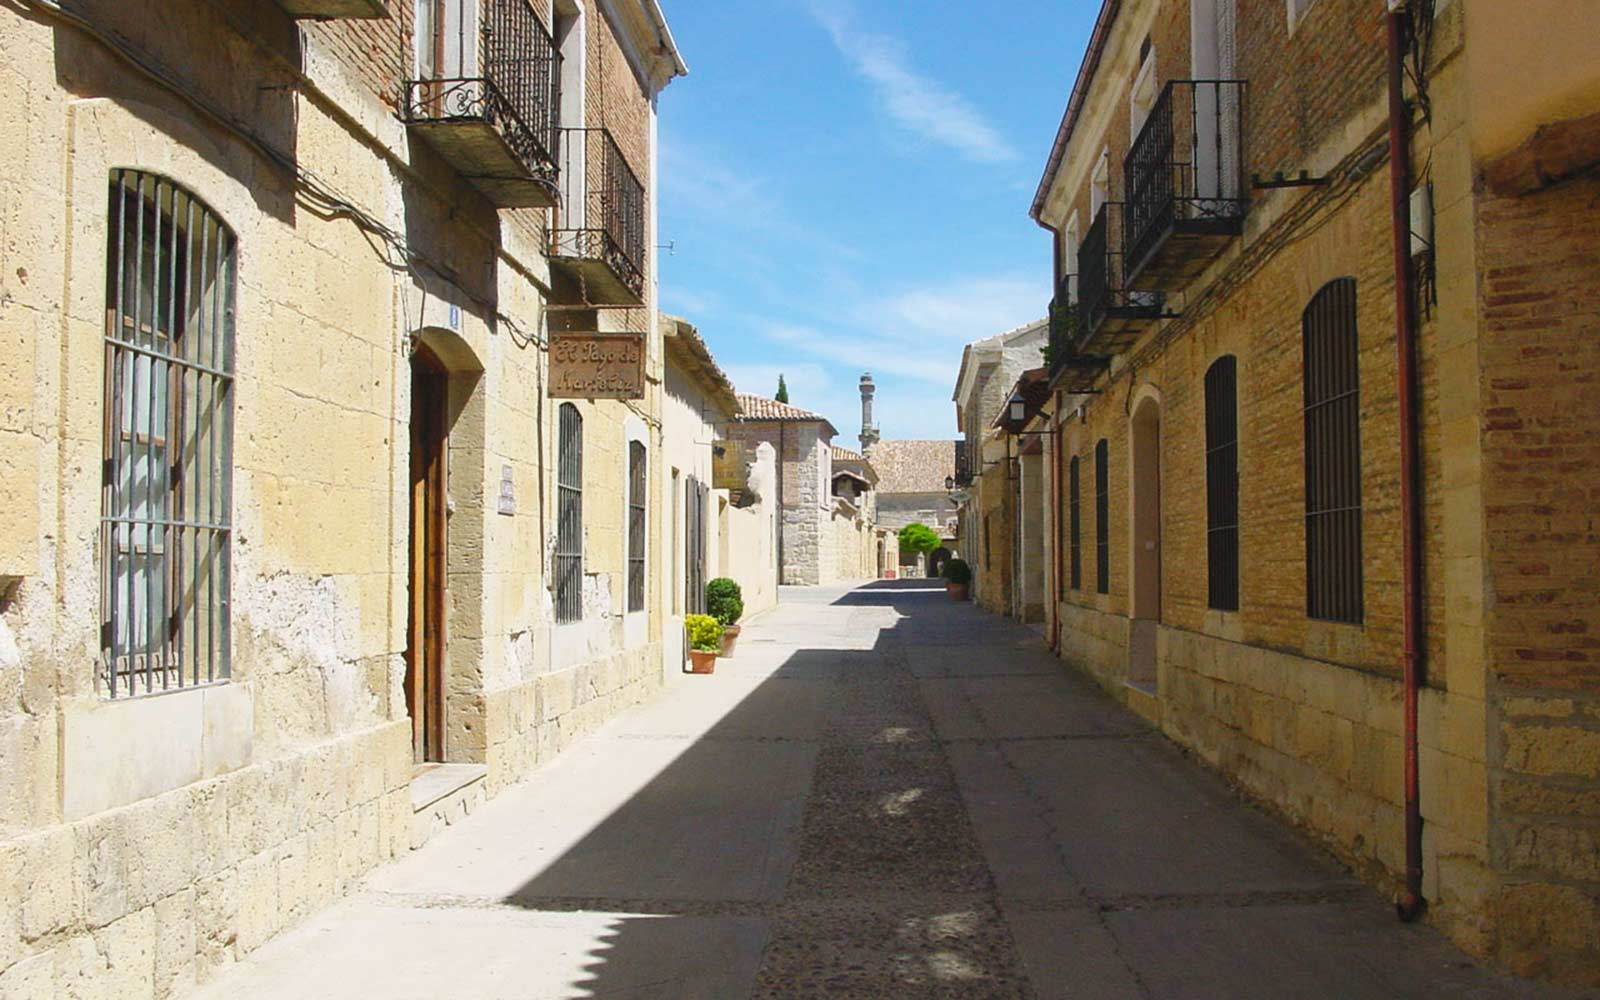 Spanish town with tons of bookstores